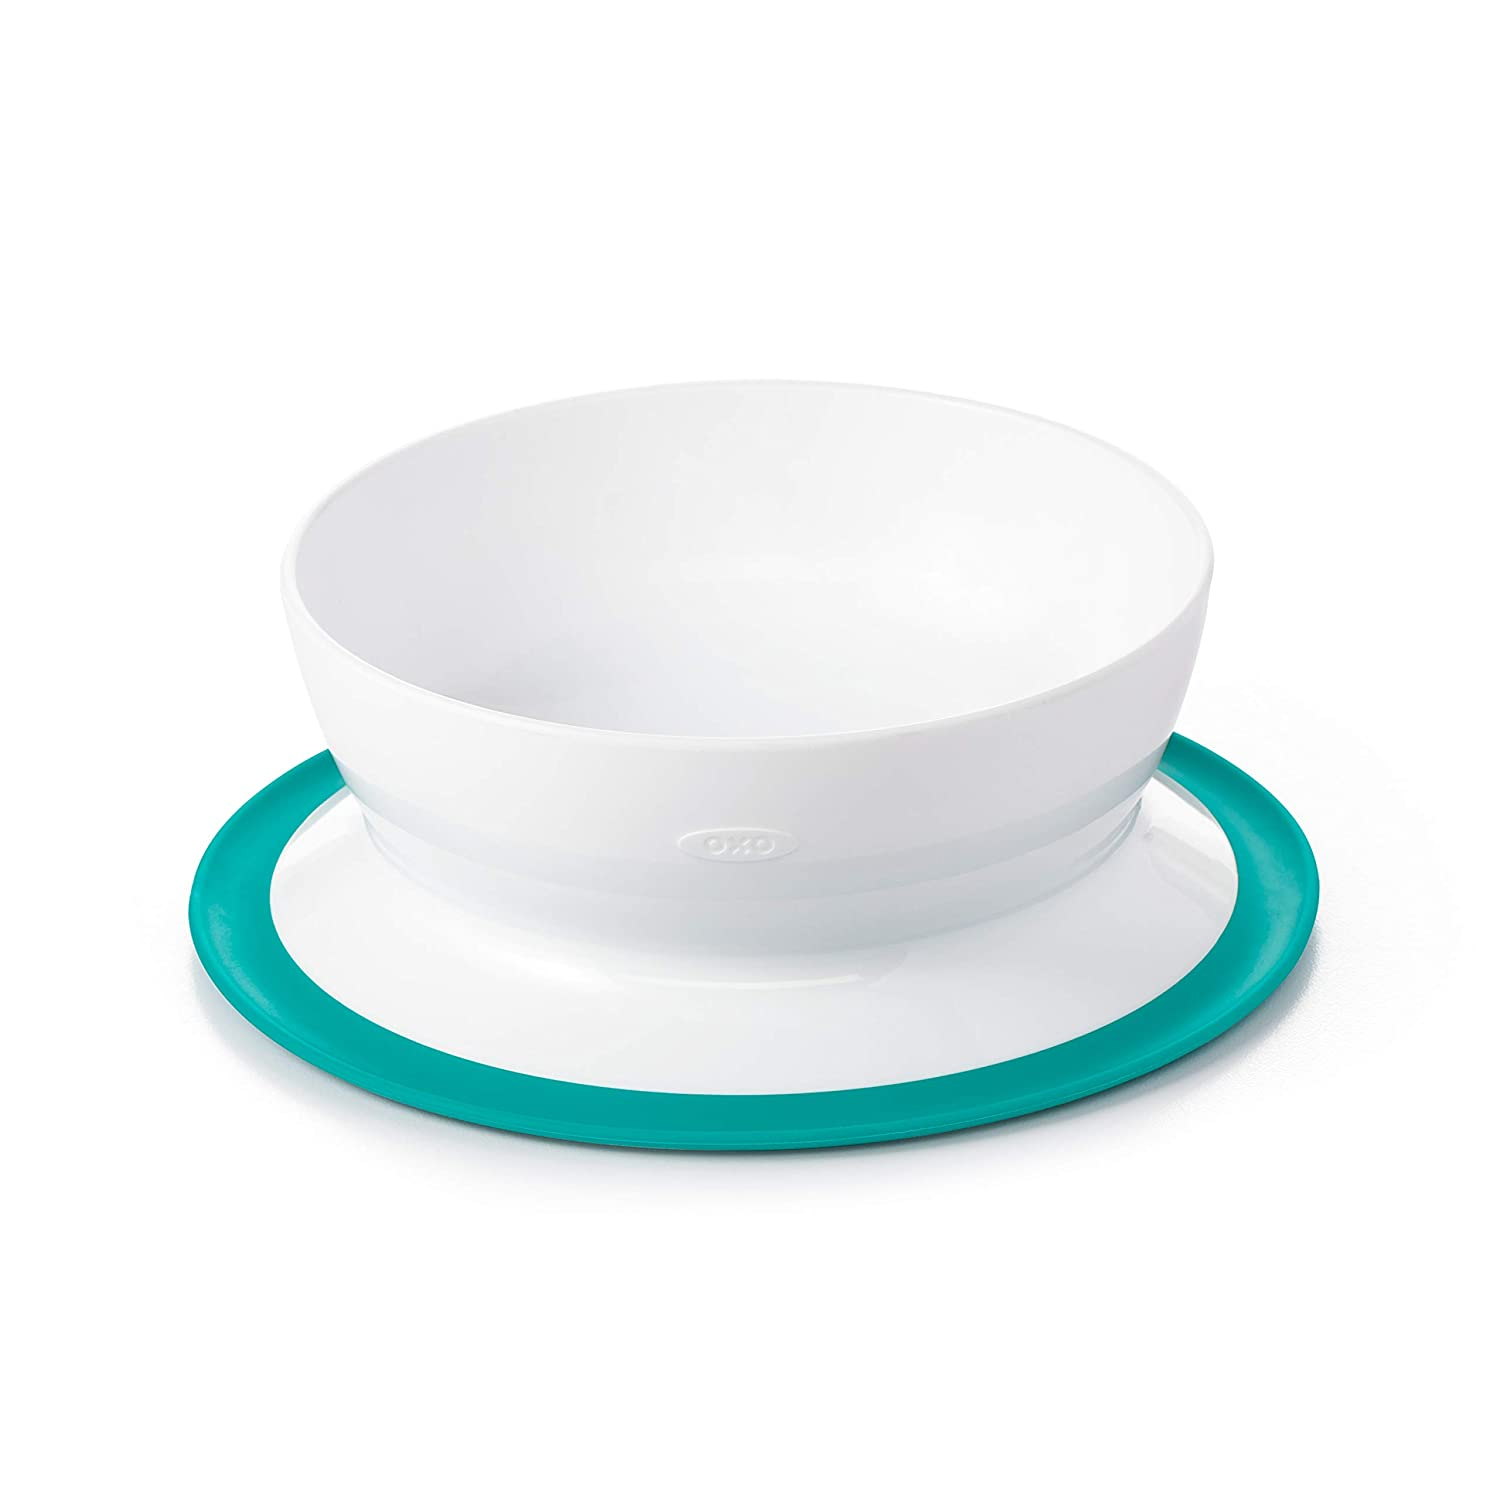 9 Best Baby Bowls and Plates Reviews in 2021 Parent Should Choose 18